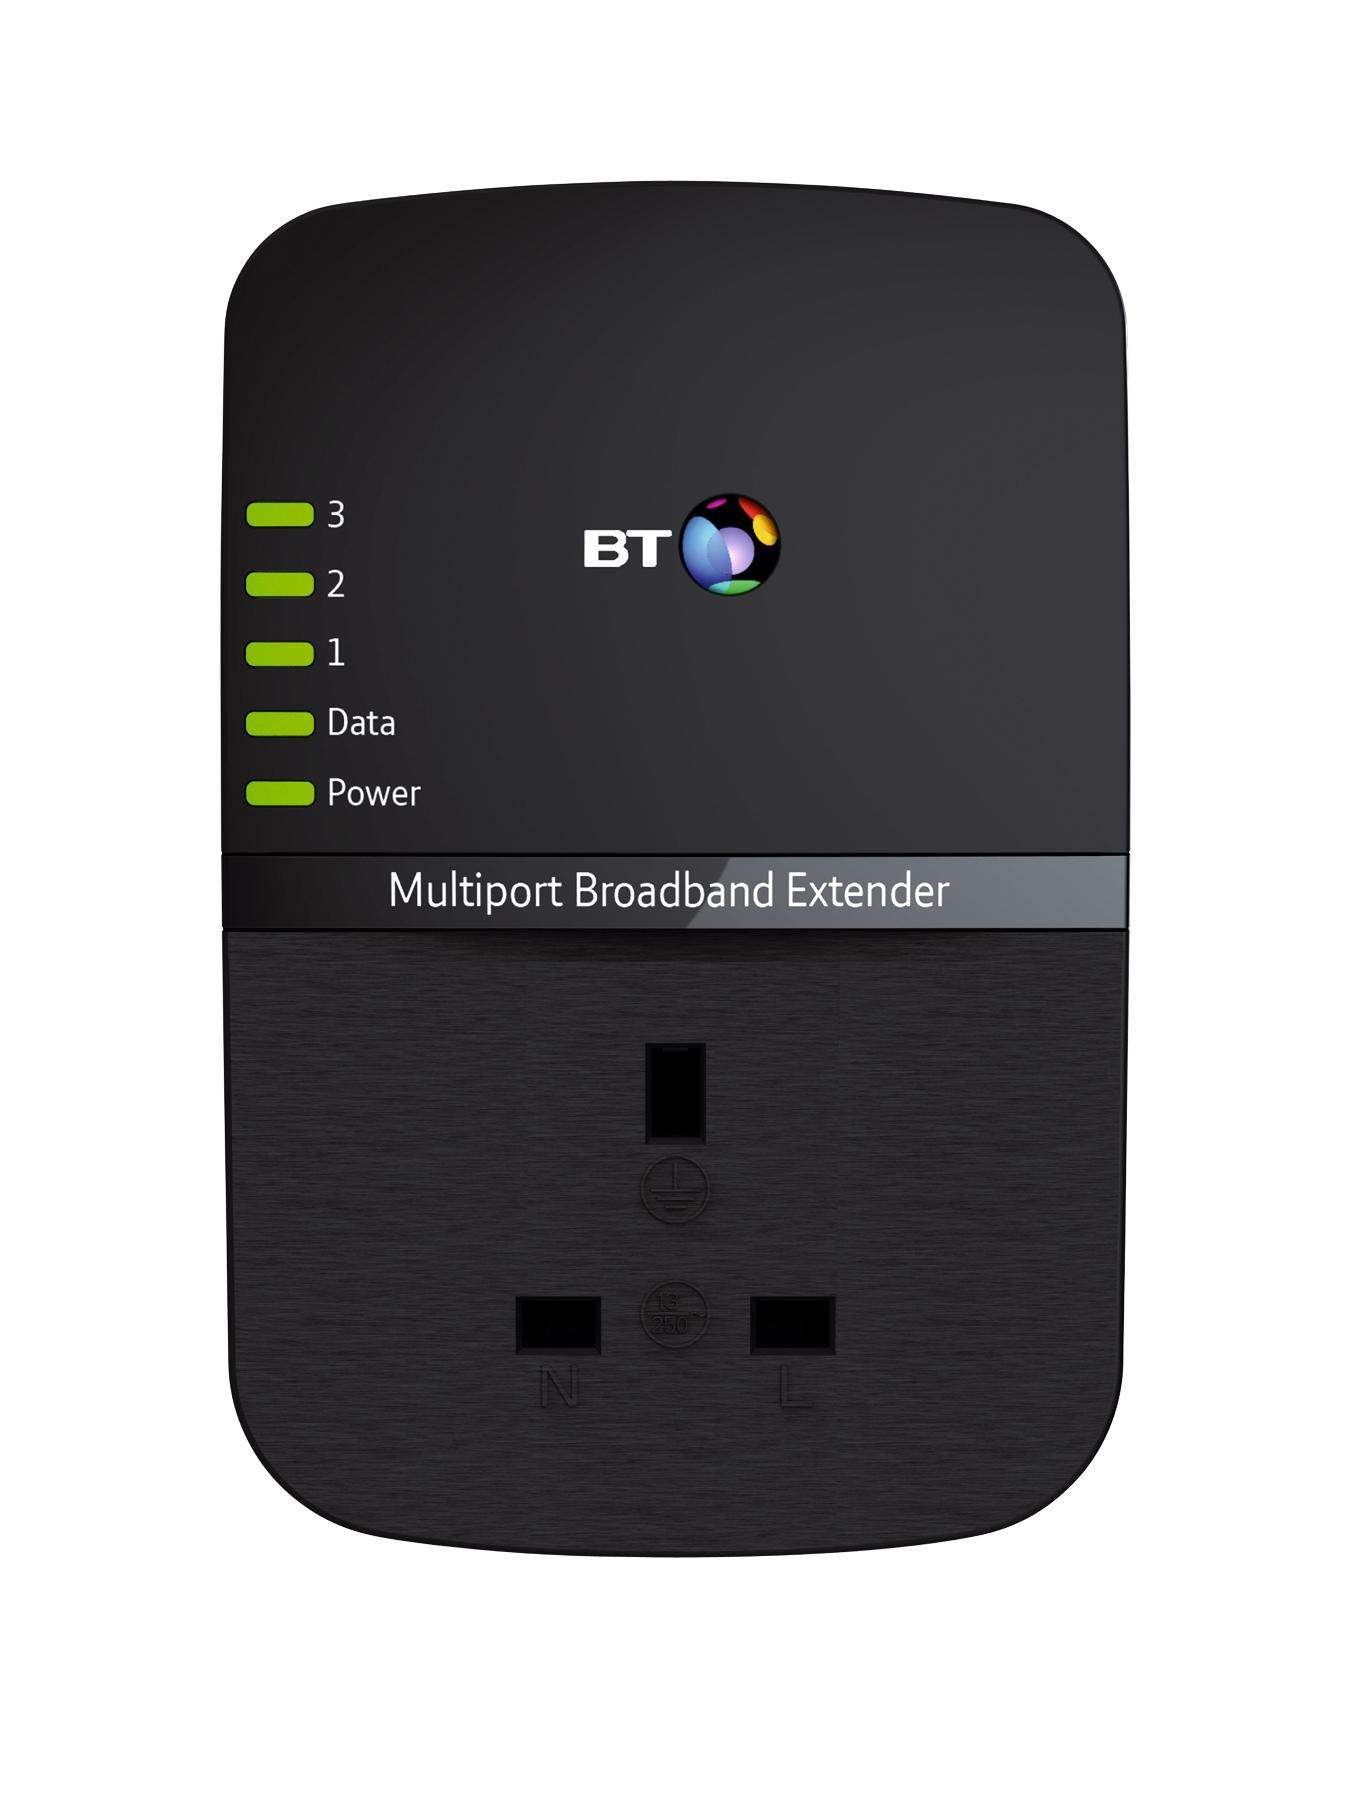 Multiport Broadband Extender 500 Add-on - Black